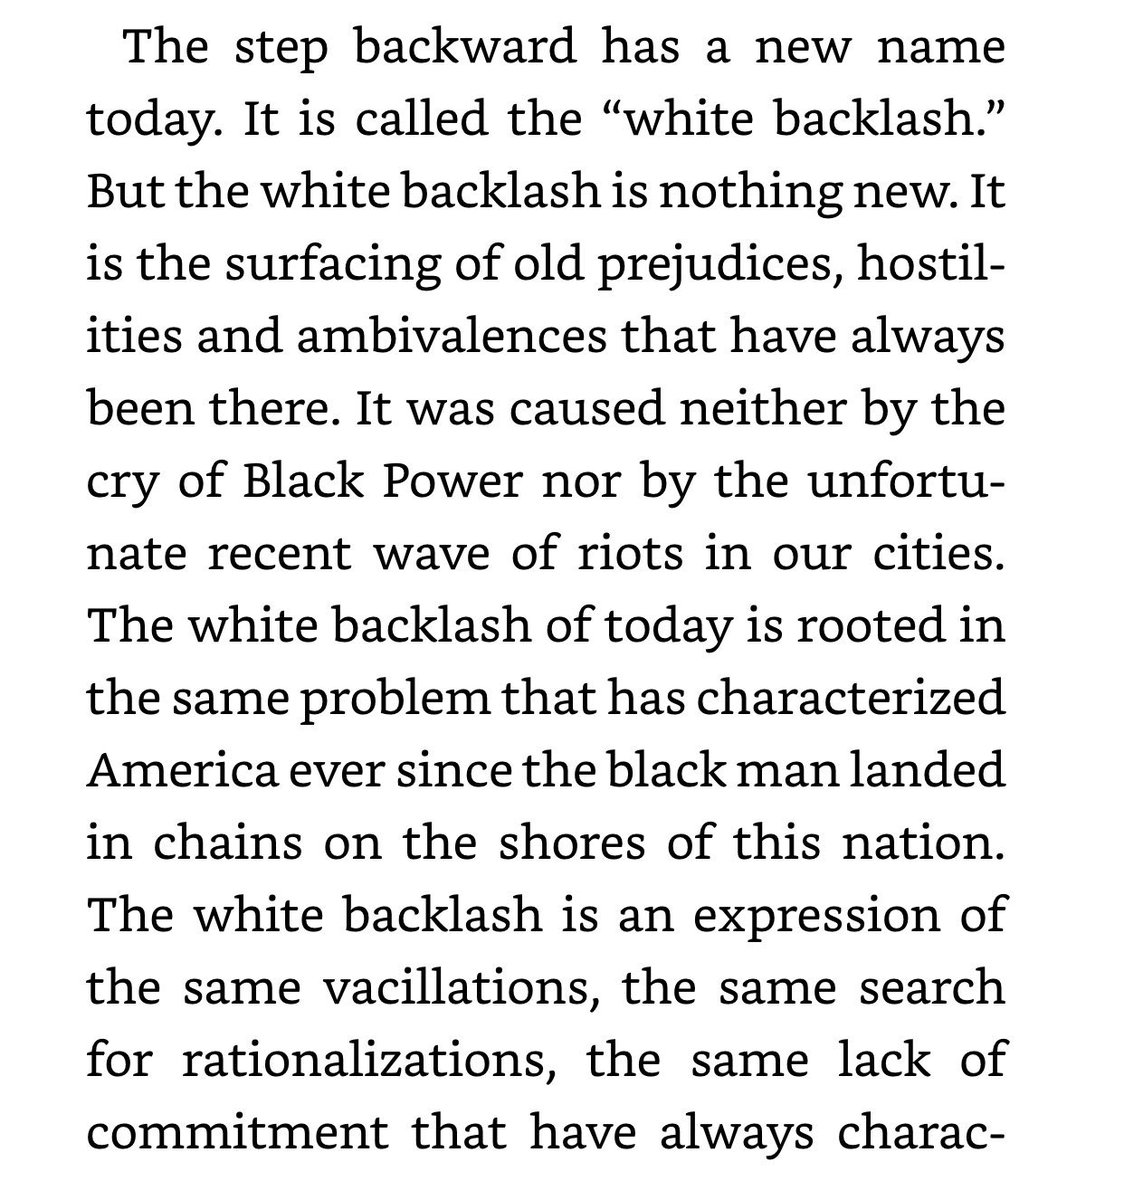 """My father wrote this about """"white backlash"""" 54 yrs ago.  Still powerful, still relevant  Many white people still think Black liberation = loss of freedom for them.  That's because, for hundreds of years, our bondage = prosperity for America.  The soul of this nation is sick. #MLK"""